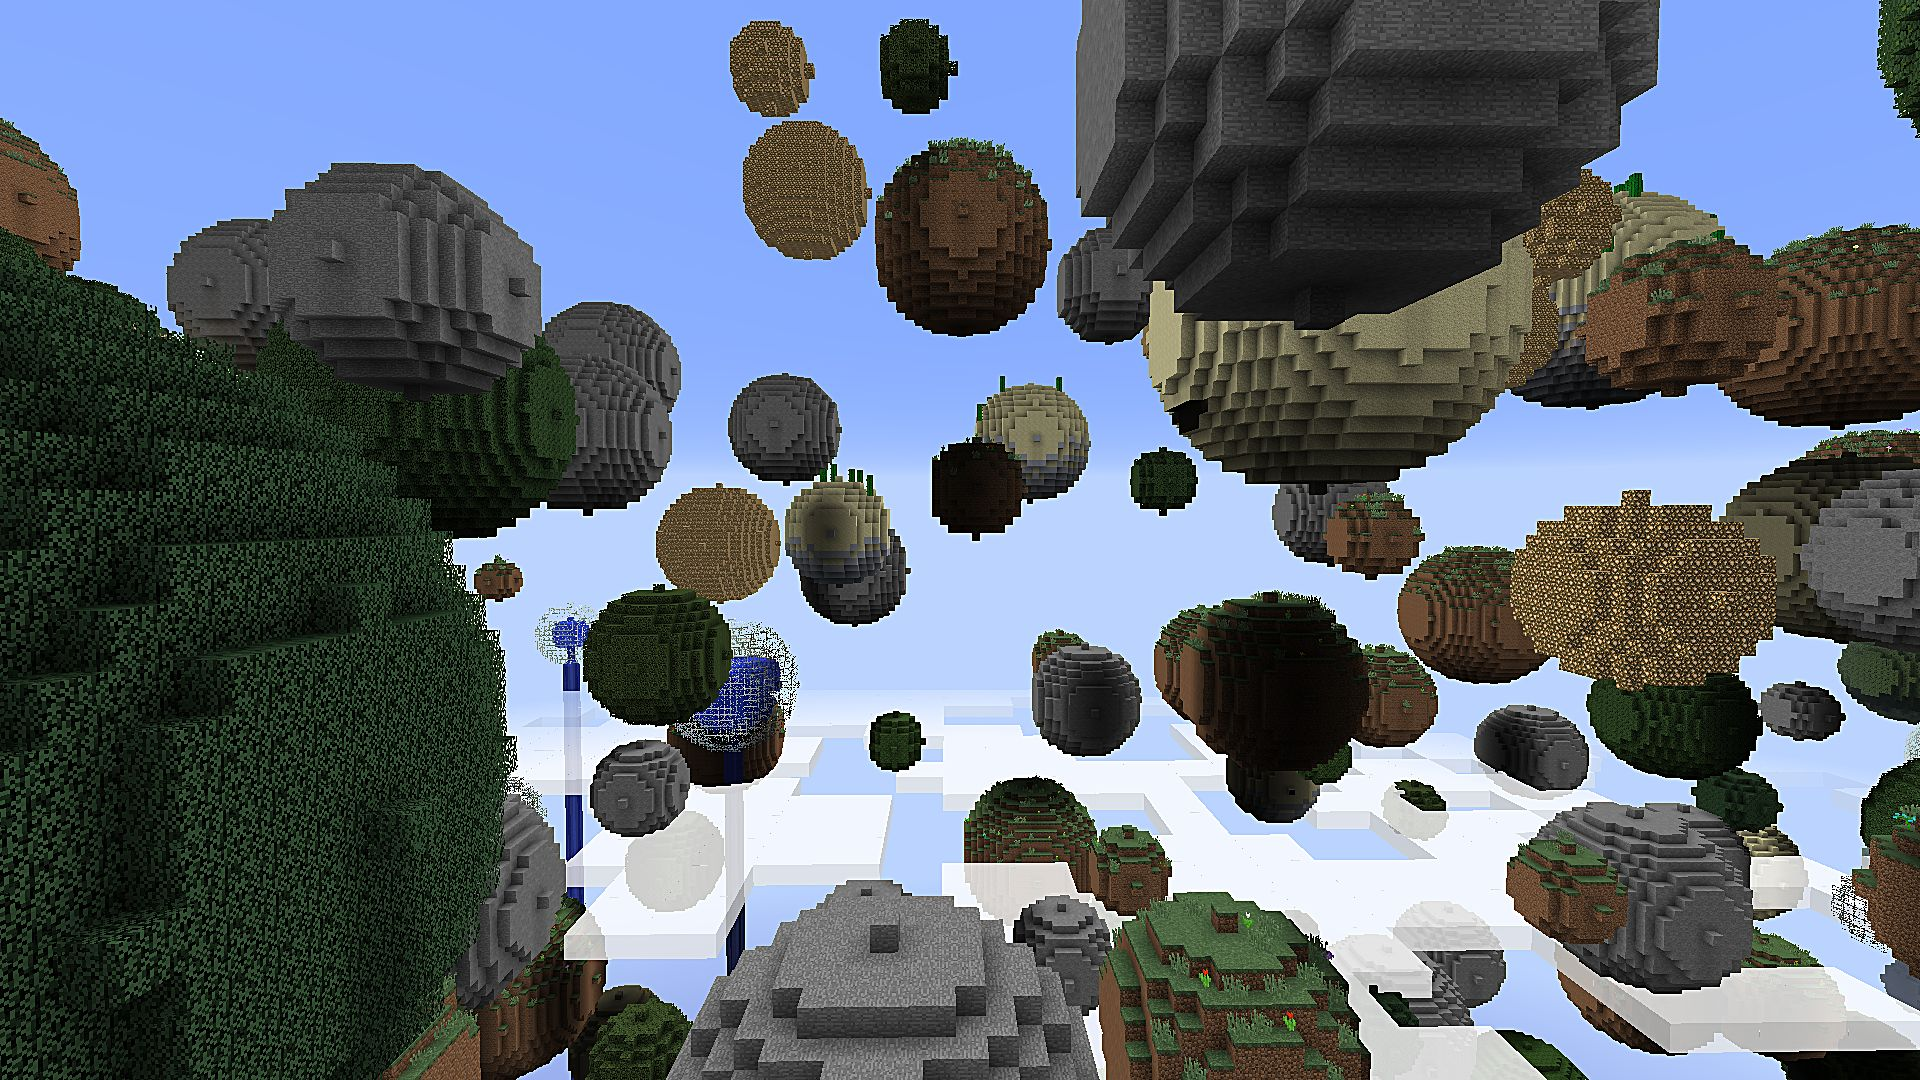 Make Minecraft Maps Using These 5 Map Editors on girl minecraft maps, best minecraft maps, funny minecraft maps, beautiful minecraft maps, great minecraft maps, coolest minecraft maps, awesome minecraft maps, good roblox maps, cute minecraft maps, amazing minecraft maps, house minecraft maps, real minecraft maps,